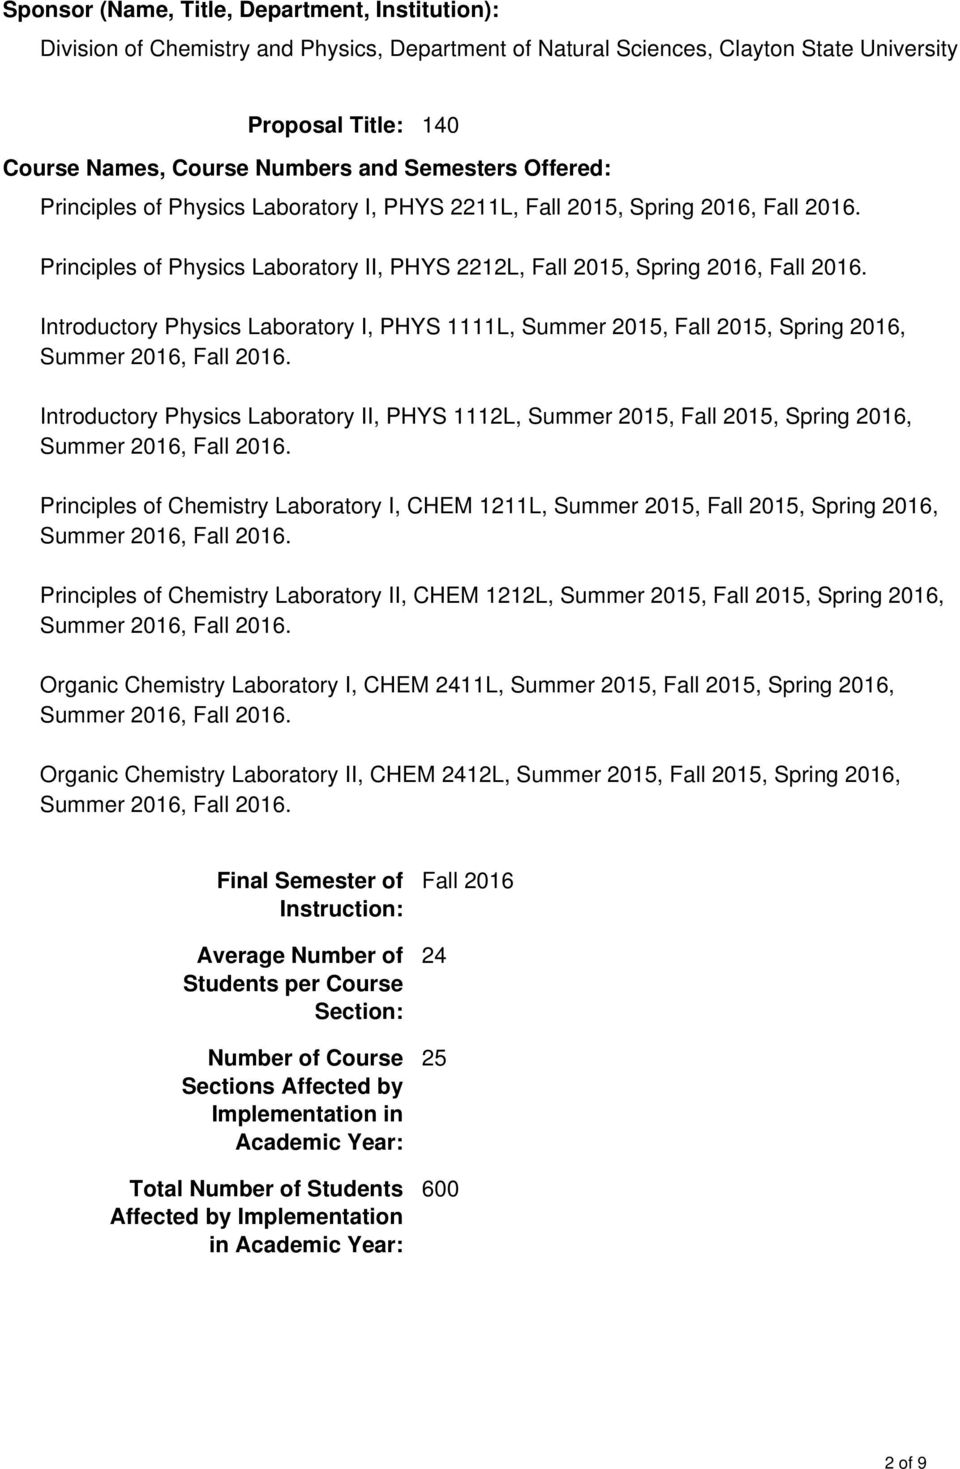 Introductory Physics Laboratory I, PHYS 1111L, Summer 2015, Fall 2015, Spring 2016, Introductory Physics Laboratory II, PHYS 1112L, Summer 2015, Fall 2015, Spring 2016, Principles of Chemistry